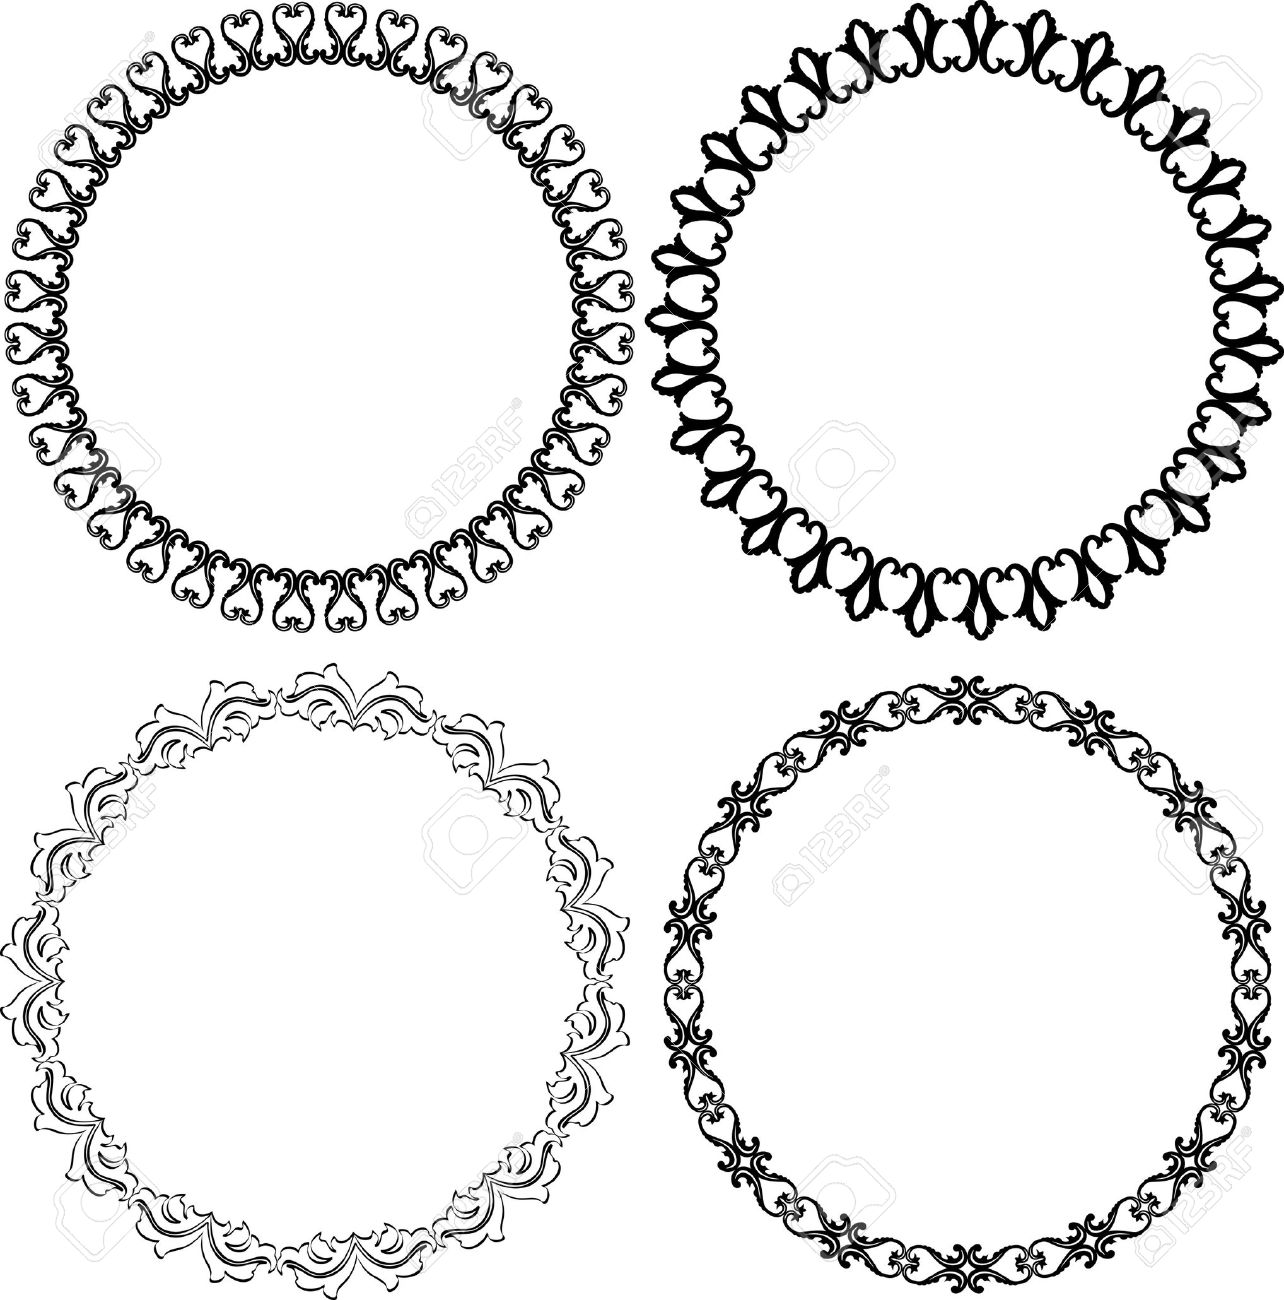 Set of decorative round frames royalty free cliparts vectors and set of decorative round frames stock vector 14120064 thecheapjerseys Images